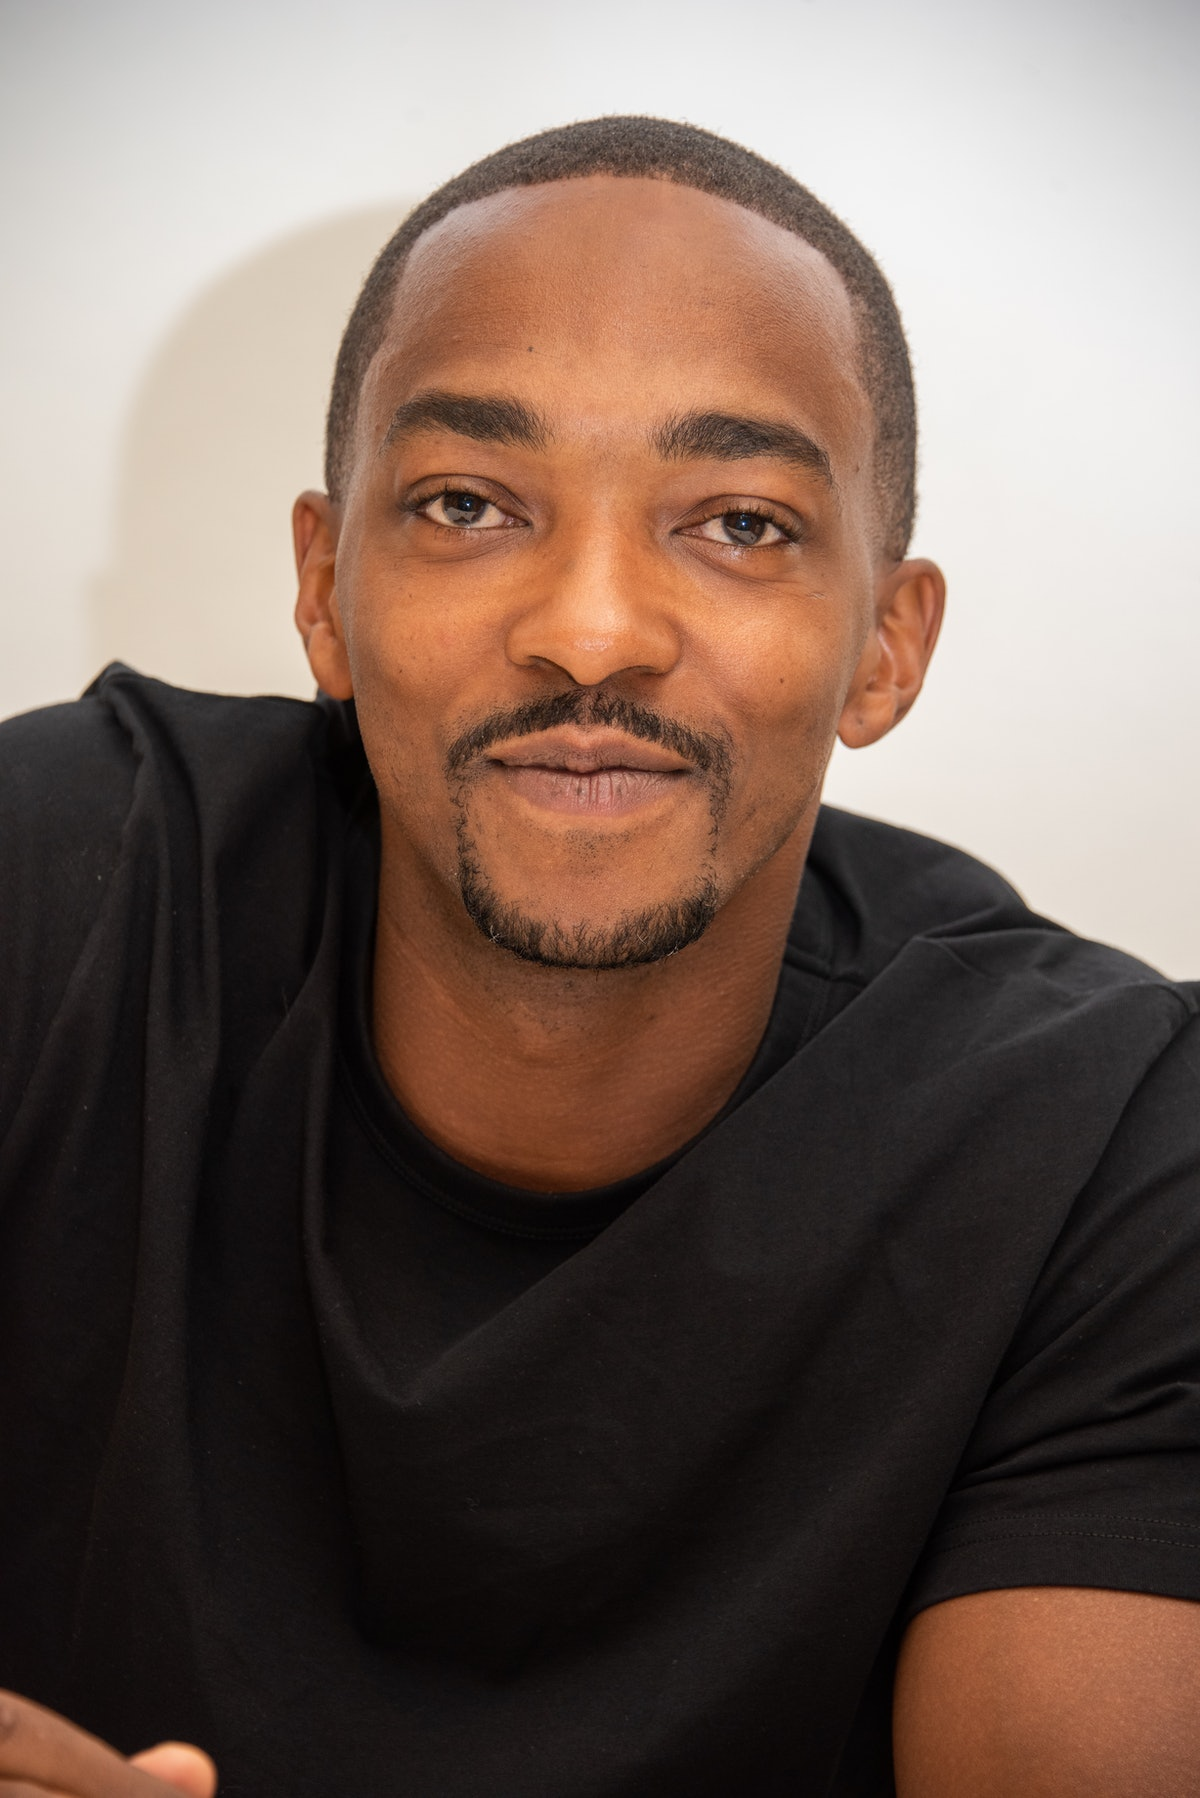 Anthony Mackie has signed a deal to appear in the new as-yet-untitled 'Captain America 4'